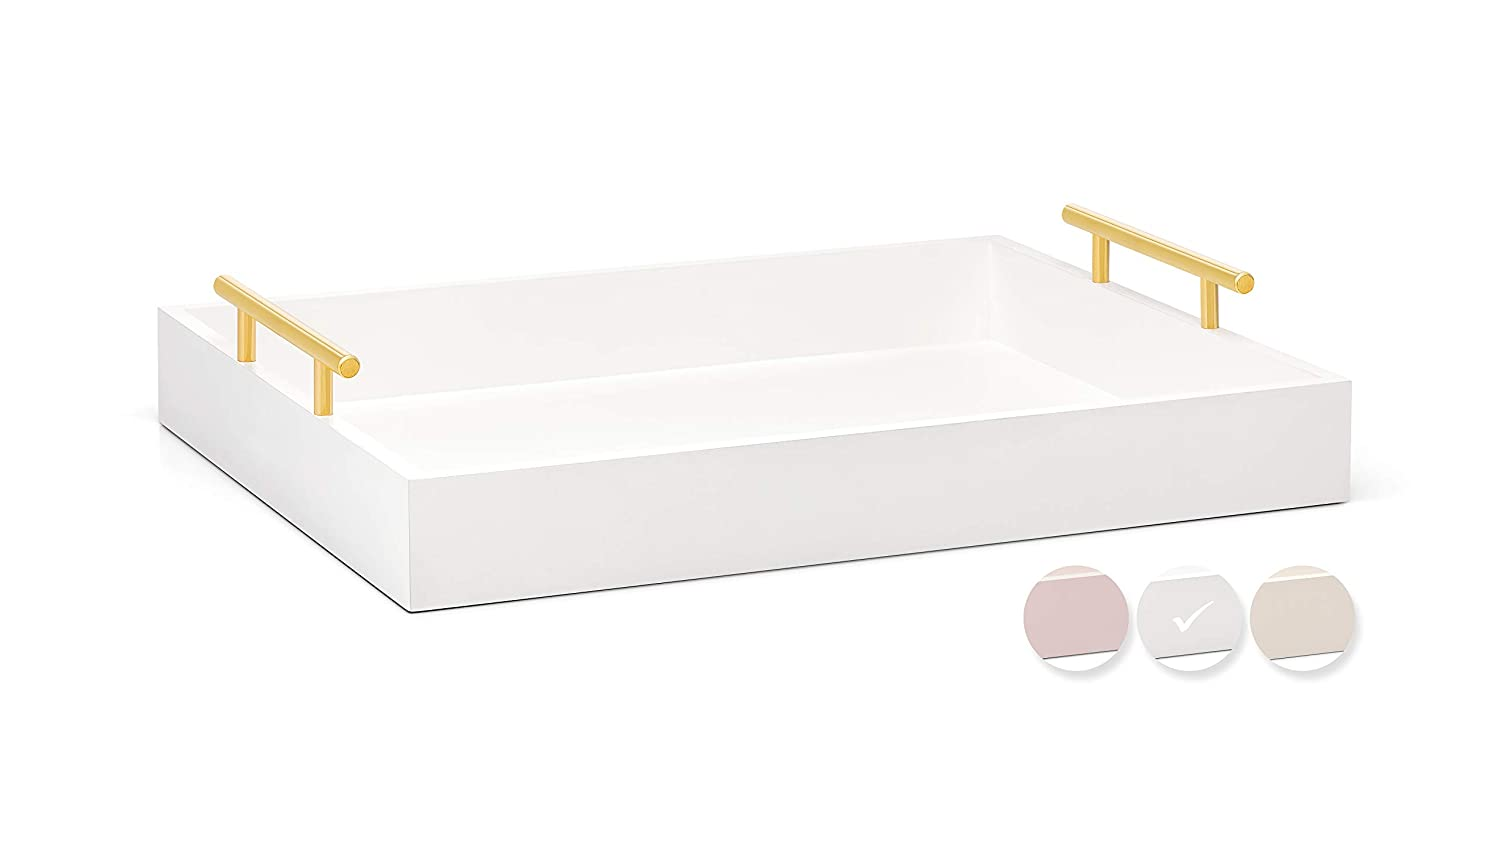 Esther Decorative Coffee Table Tray – White and Gold, Wood Serving Tray for Ottoman or Centerpiece, Rectangular, Polished Metal Handles, Beautiful Wooden Construction, 16.5x12.25, Soft Matte Finish